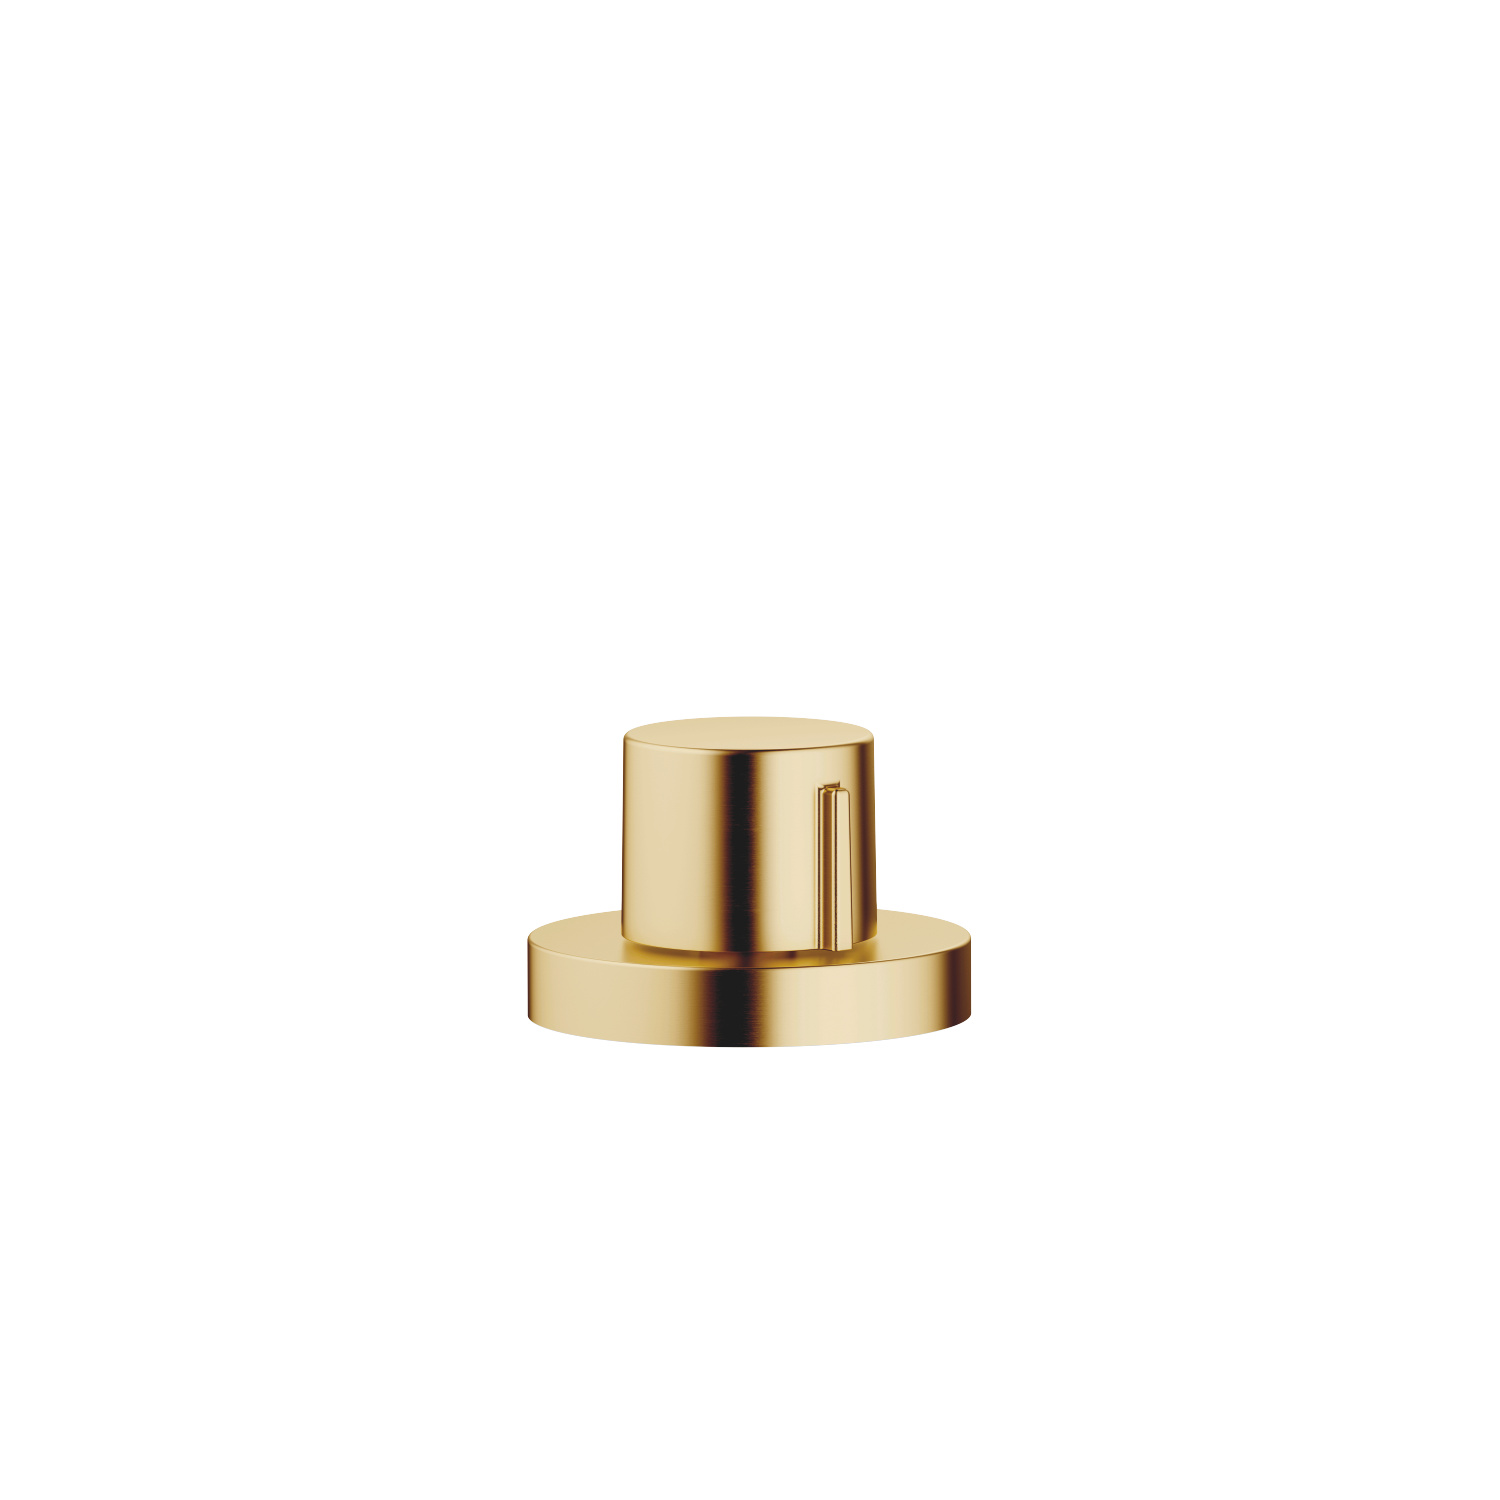 Strainer waste with control handle - brushed Durabrass